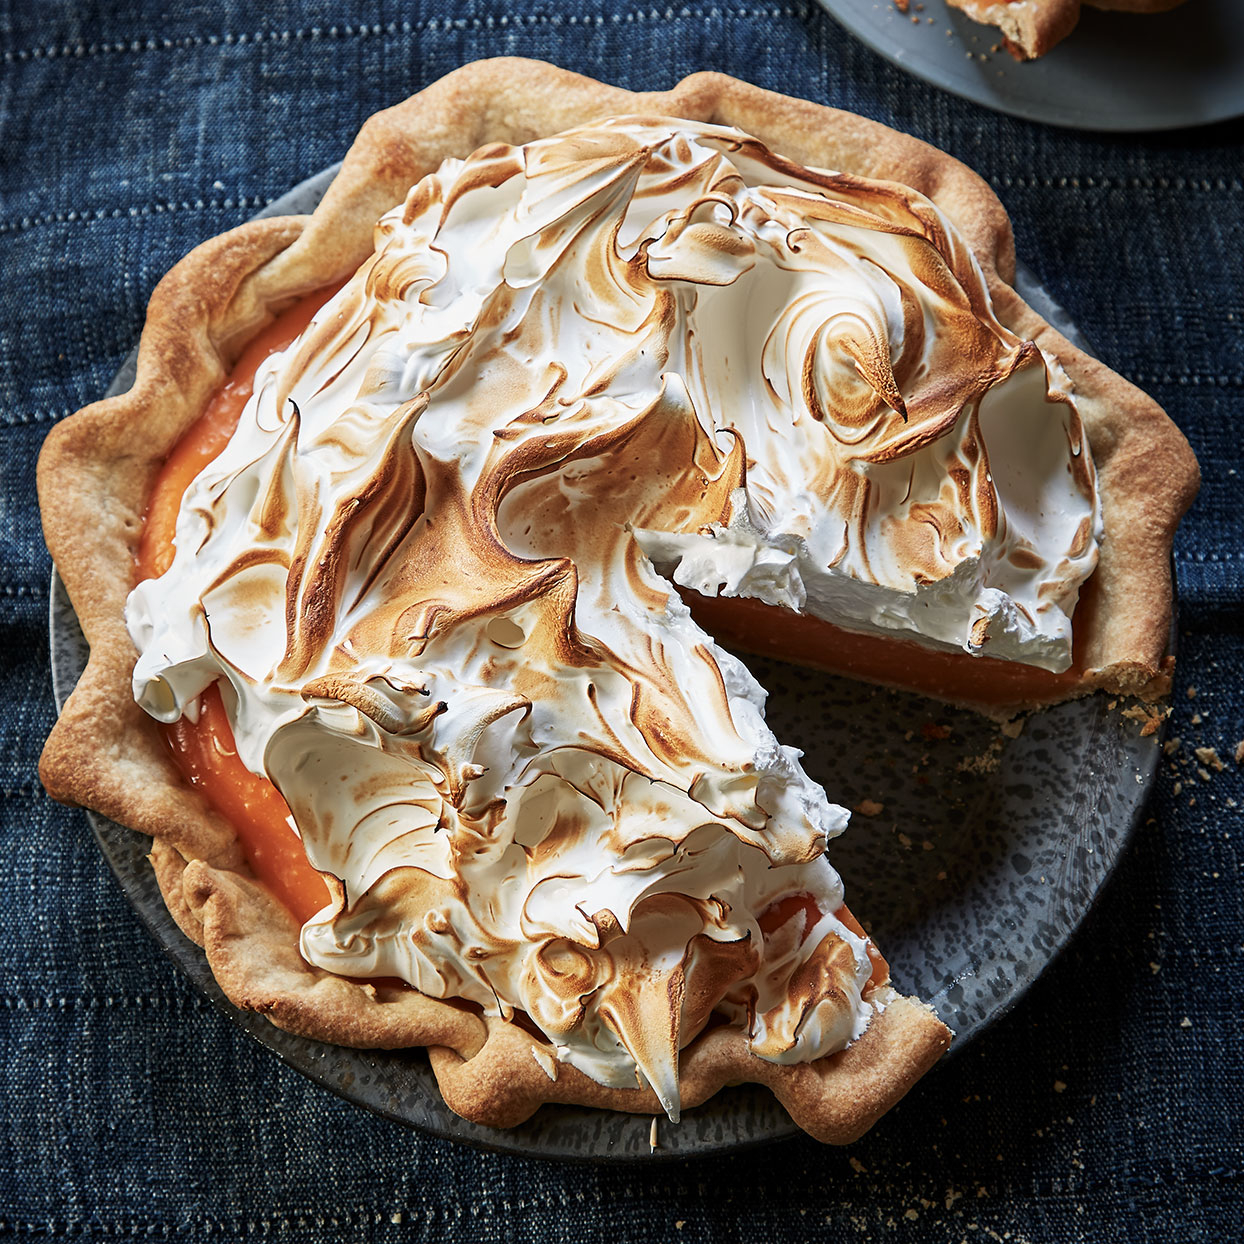 For this pie's filling we call for fresh squeezed grapefruit juice, but store-bought (not frozen) works well and may even give you more brightly colored results. The Italian meringue topping is made by beating hot sugar syrup into egg whites that are already beaten to stiff peaks. It's a bit more effort, but the meringue holds its shape longer. Source: EatingWell Magazine, November 2019